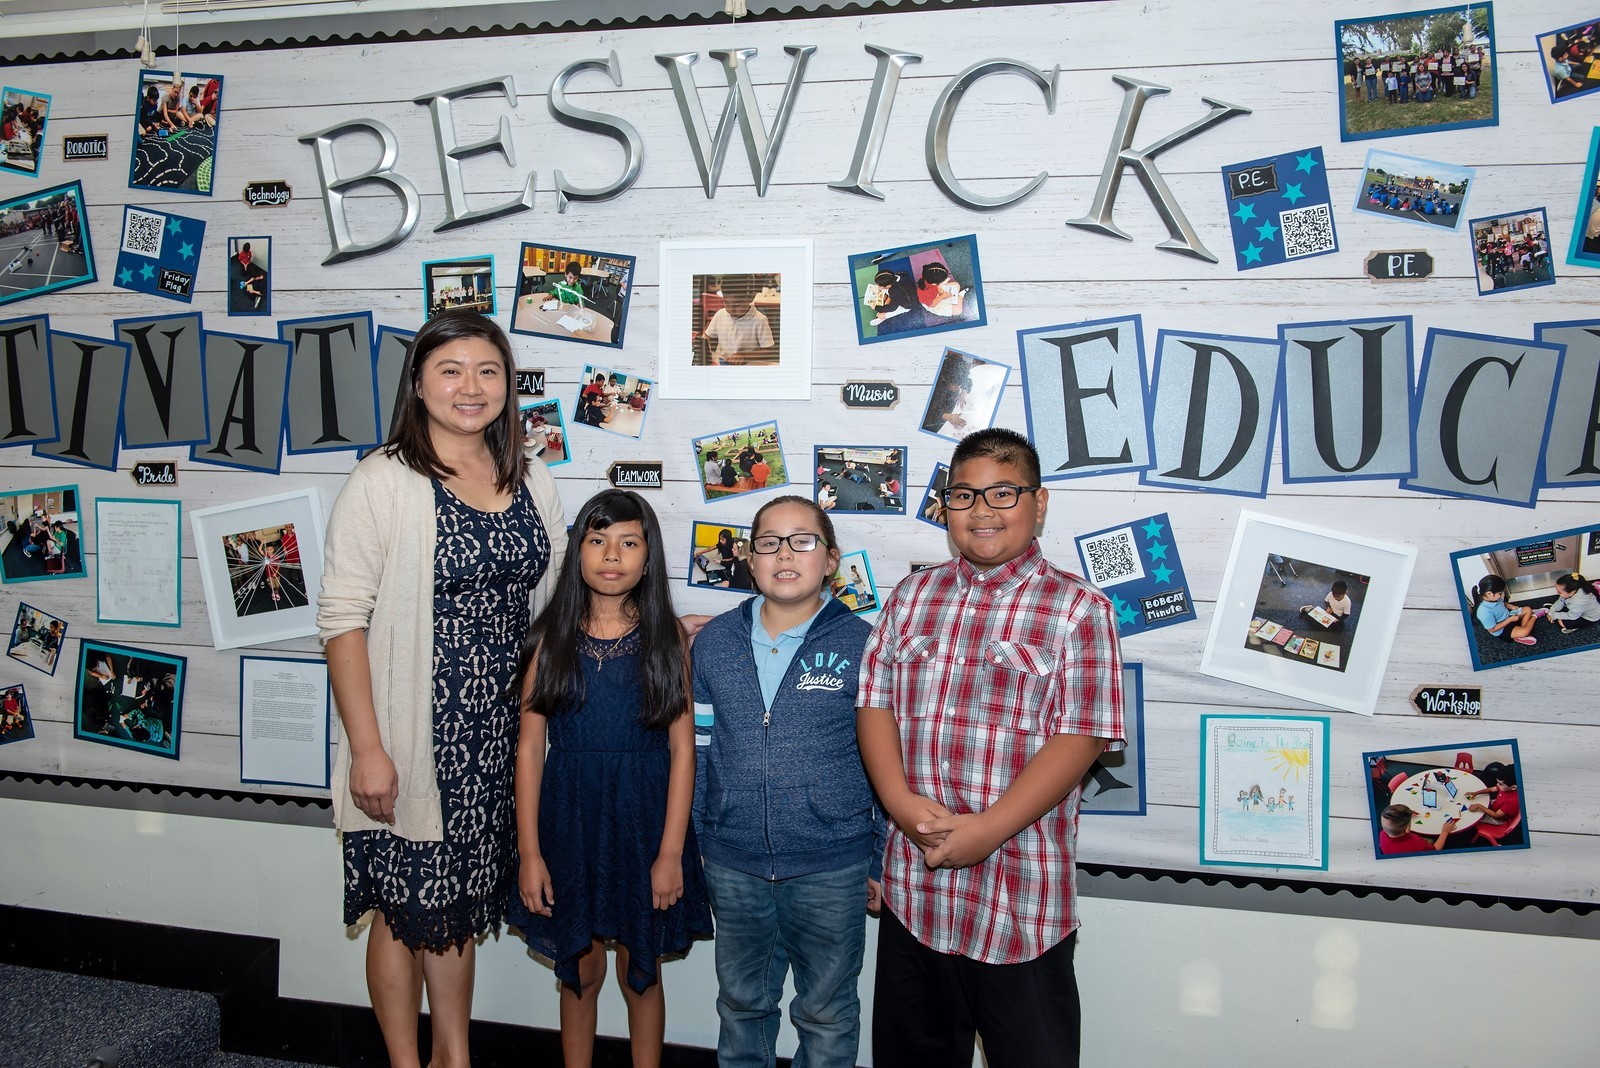 Beswick Salute to Schools Board Room Display Photo of Display, principal and three students